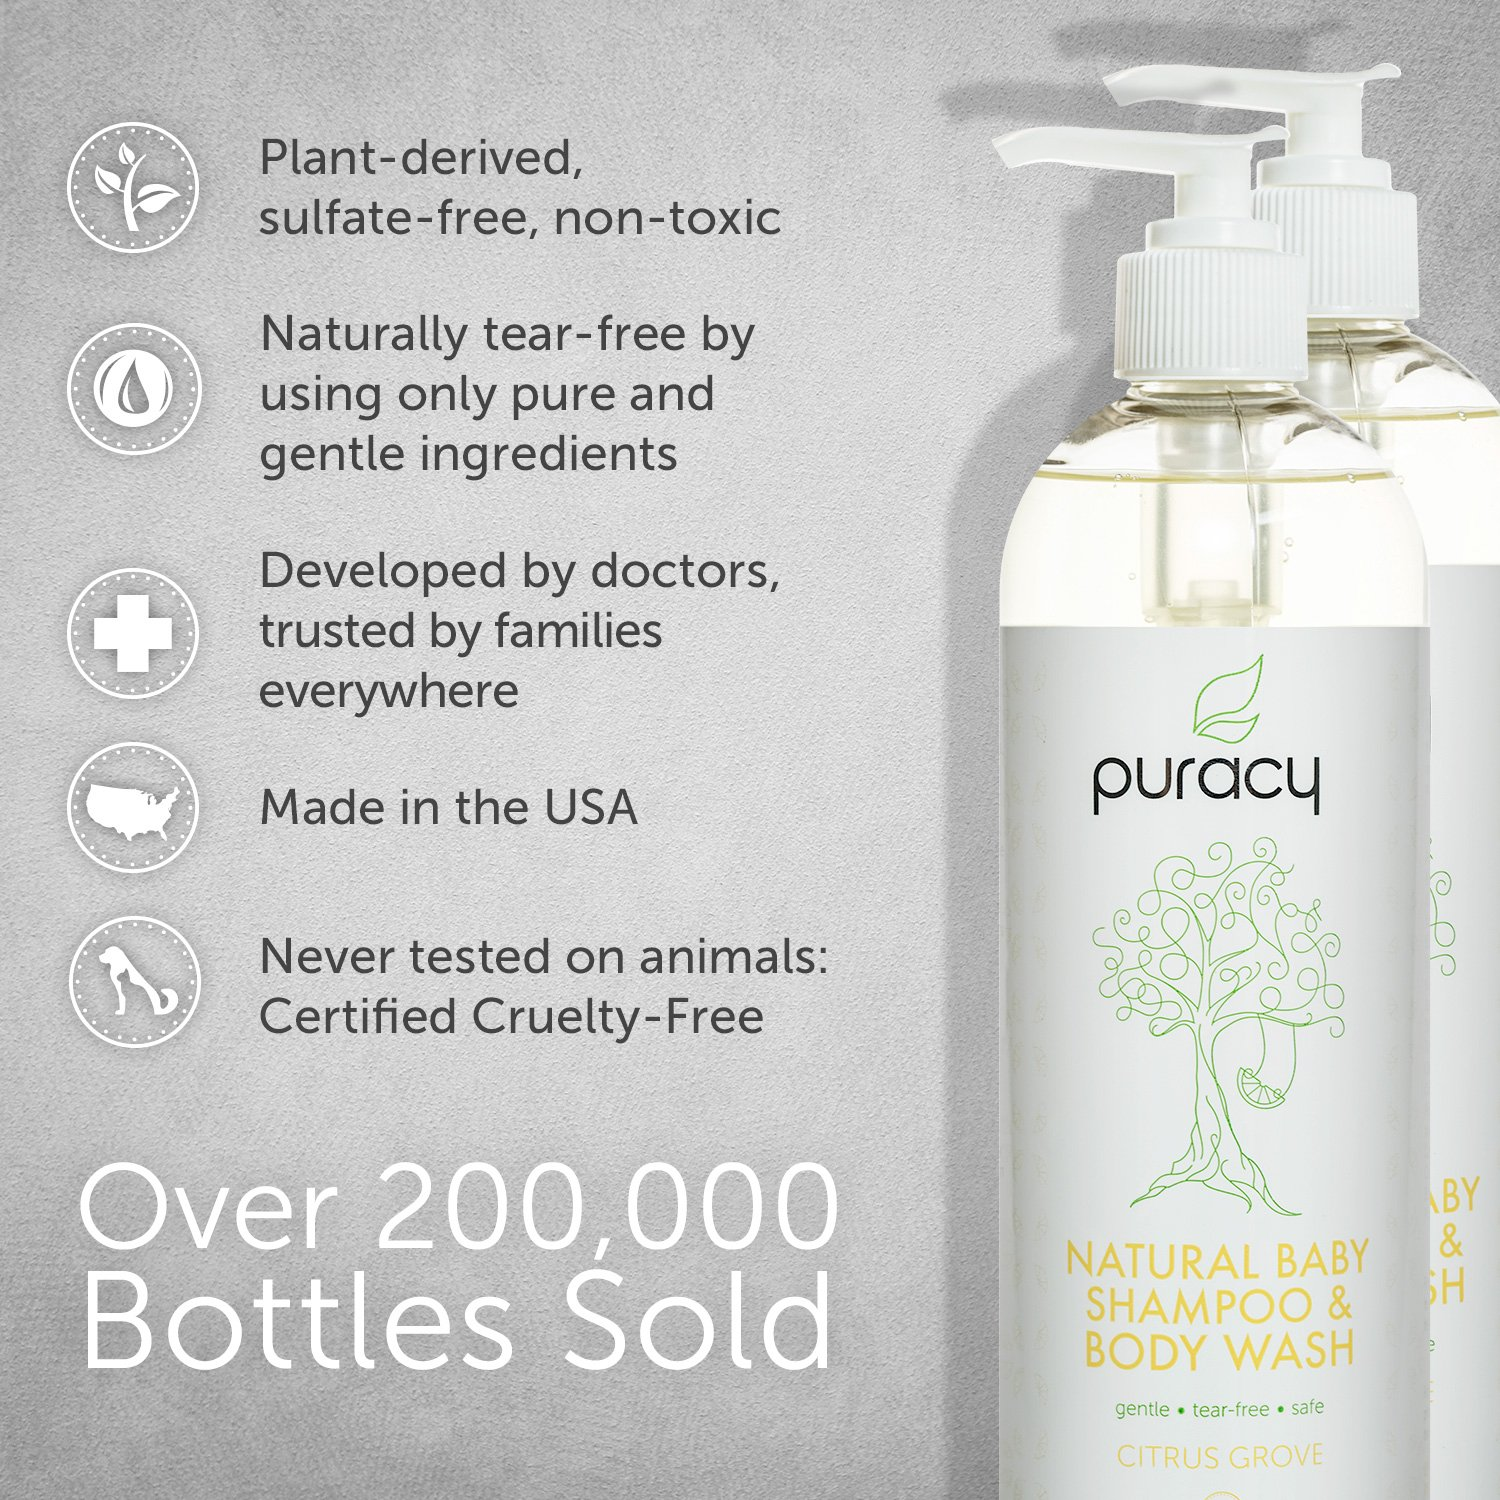 Puracy Natural Baby Shampoo & Body Wash, Tear-Free Soap, Sulfate-Free, 16 Ounce, (Pack of 2) by Puracy (Image #2)